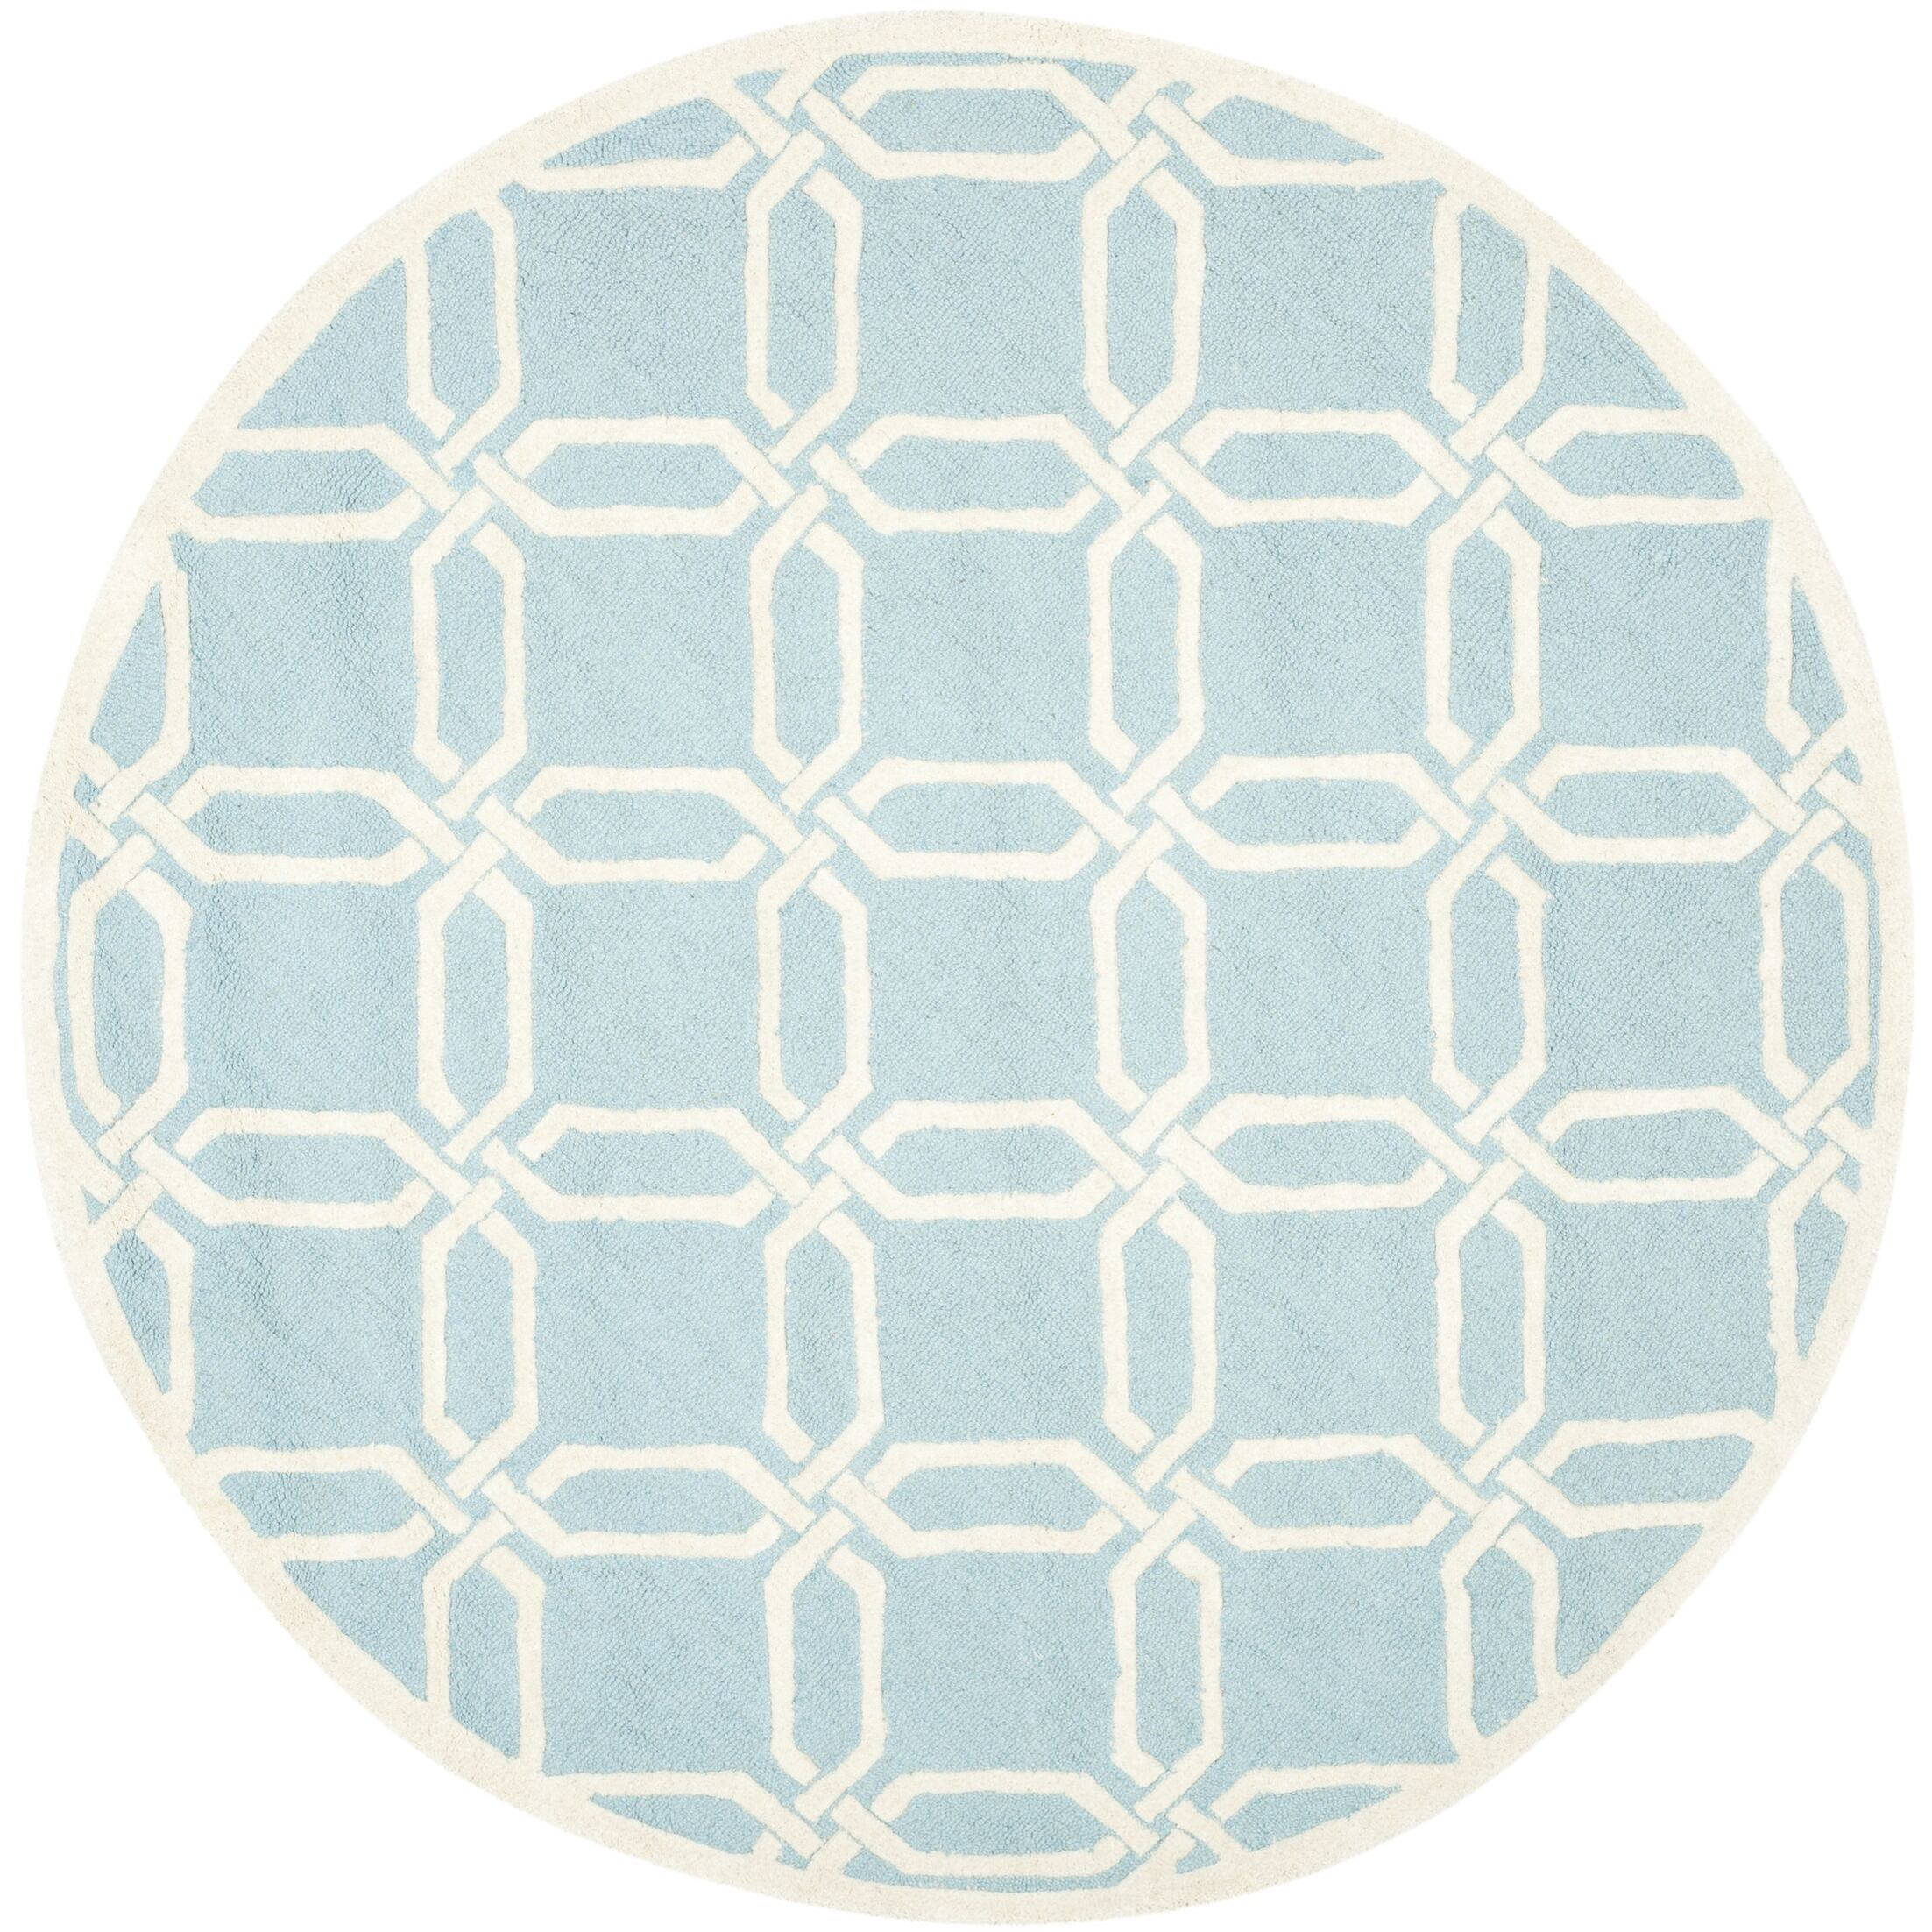 Martins Hand-Tufted Light Blue/Ivory Area Rug Rug Size: Round 6'